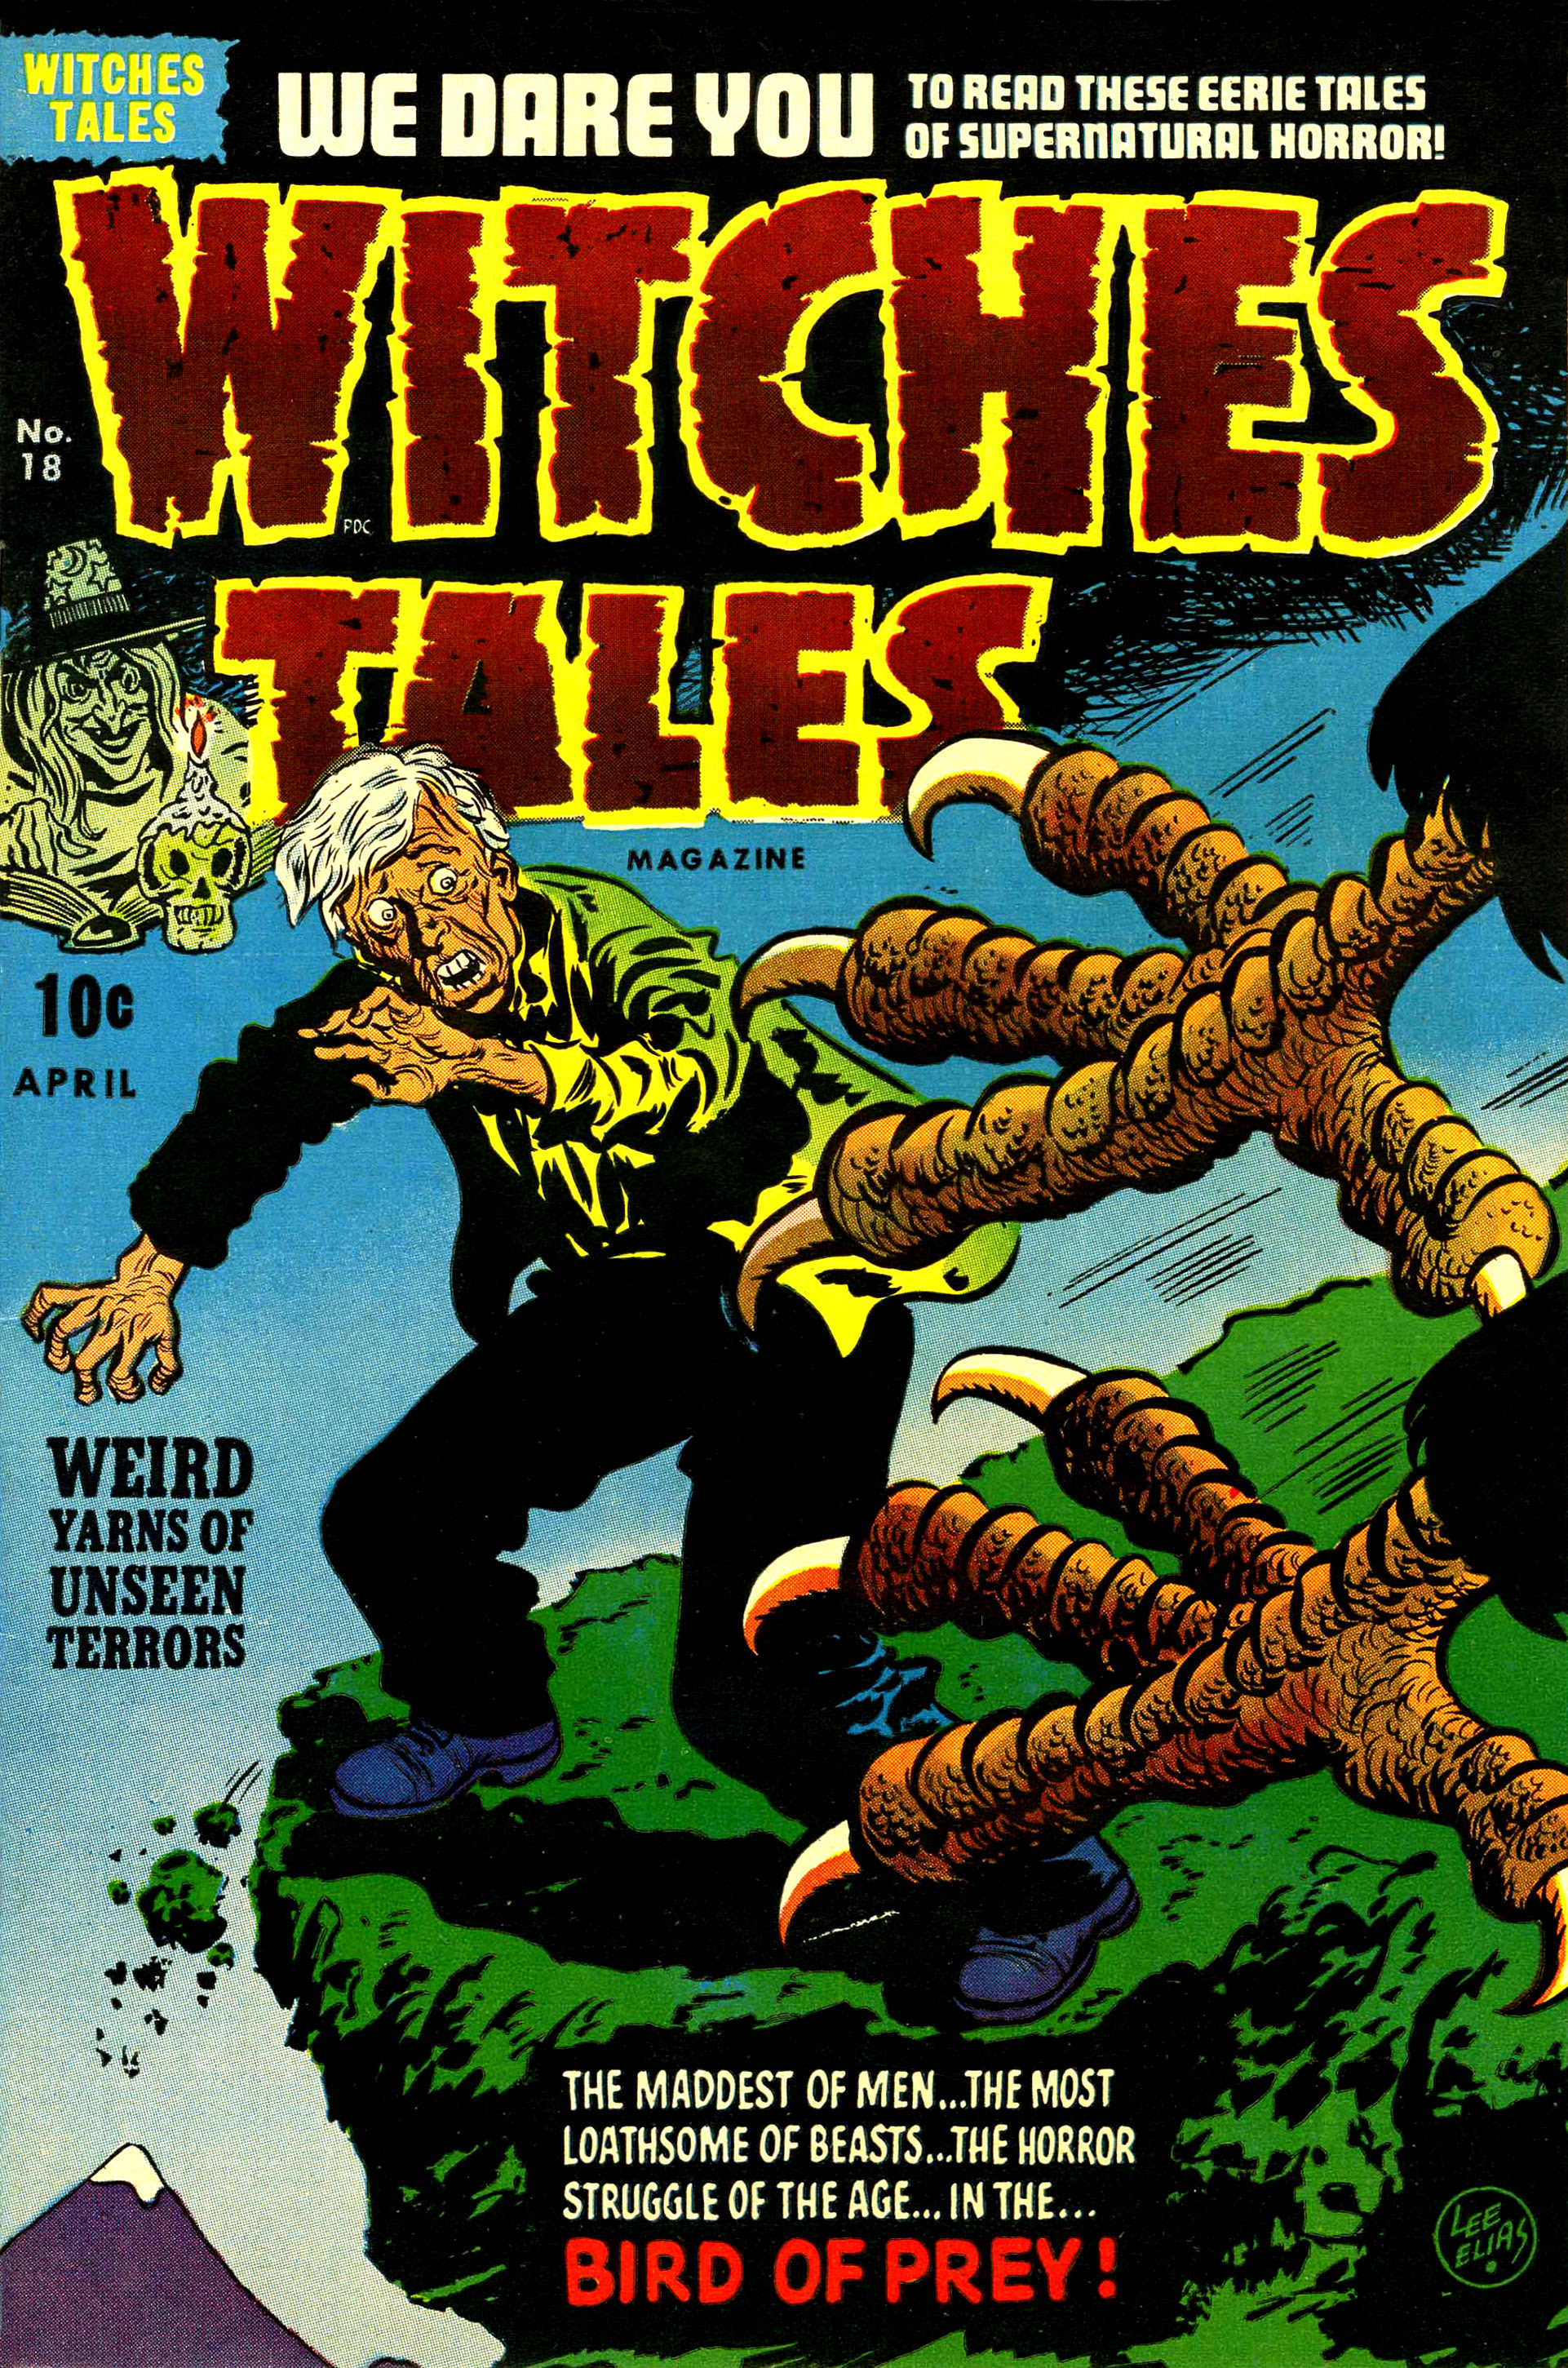 Witches Tales #18, Lee Elias Cover (Harvey, 1953)